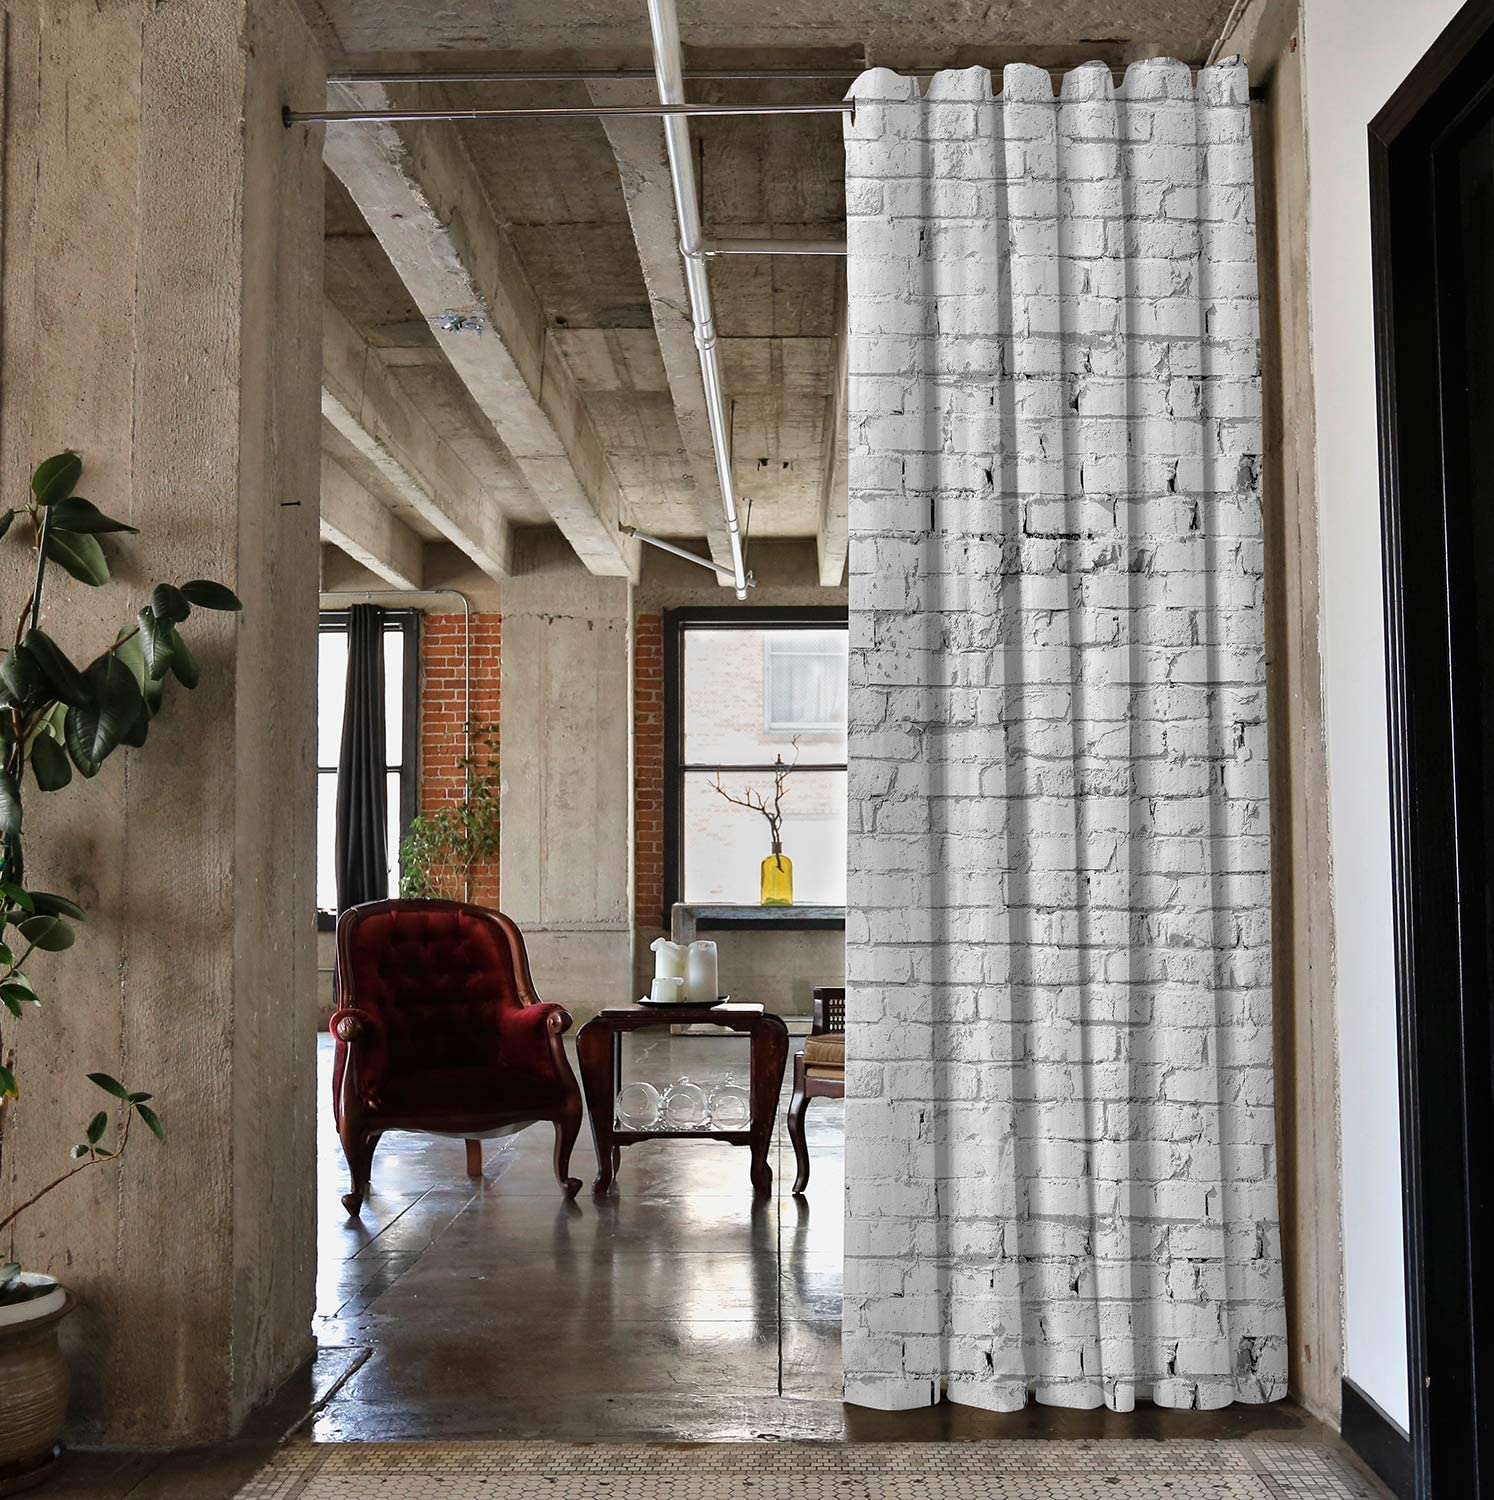 X-Large A 12ft Wide 8ft Tall x 9ft White Brick RoomDividersNow Ceiling Track Room Divider Kit